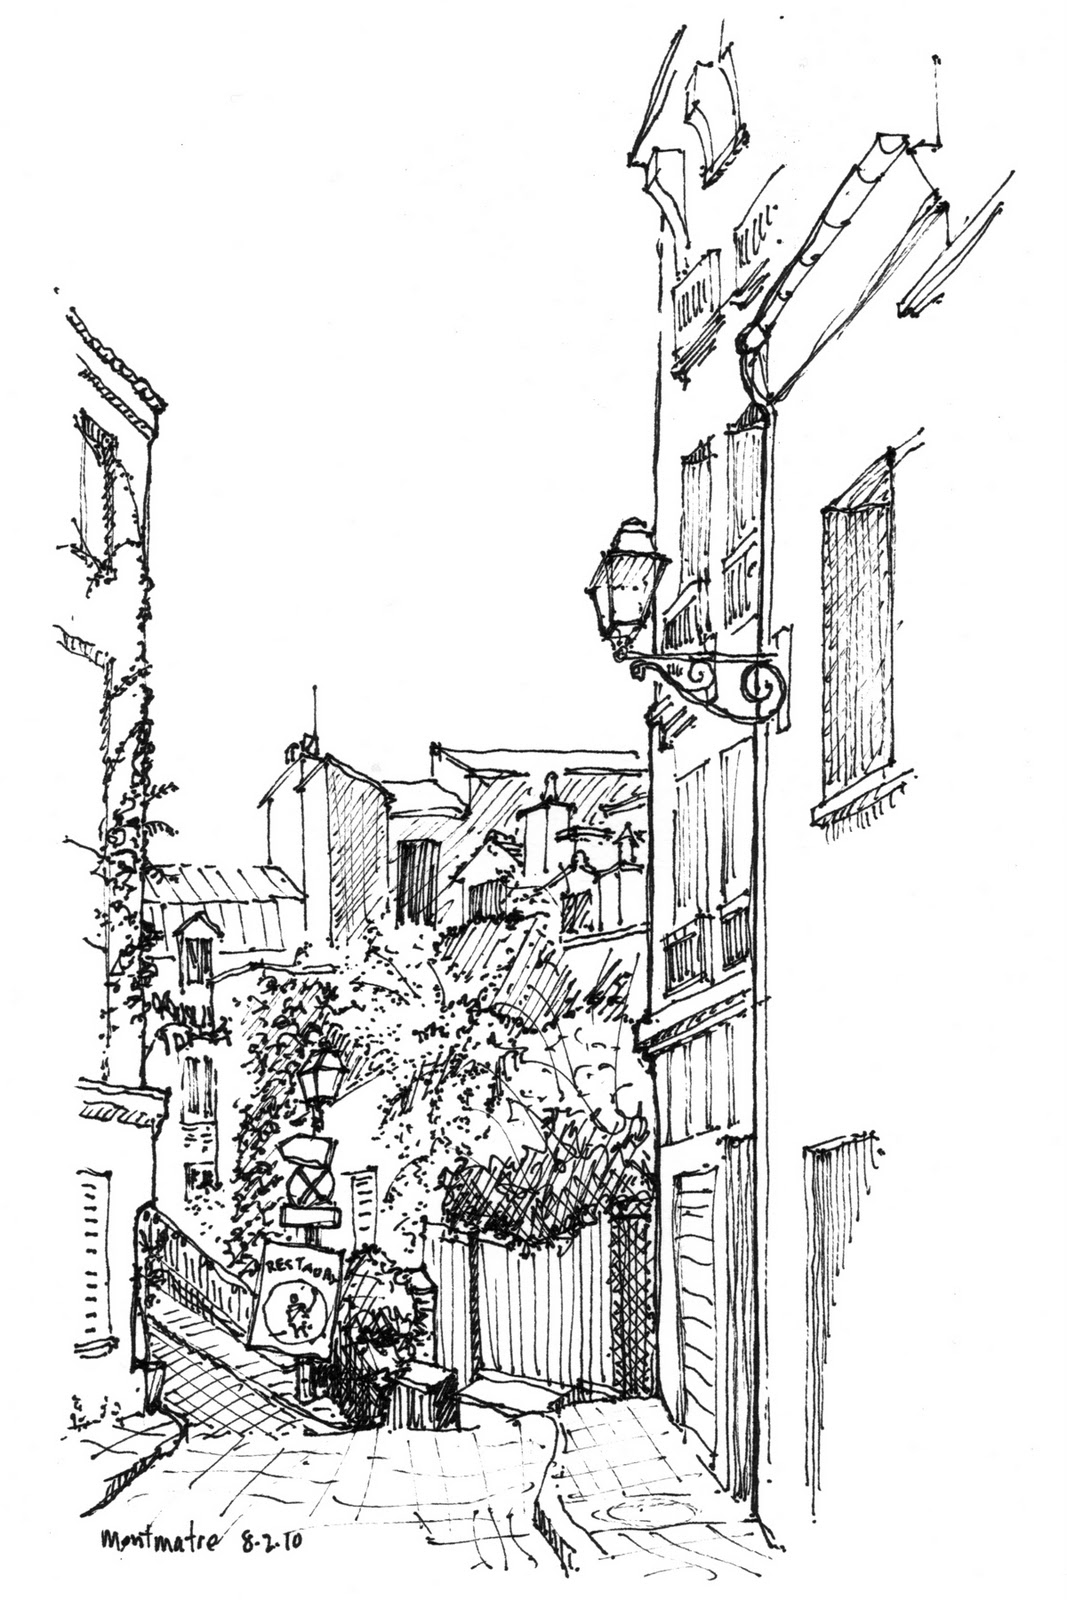 Bob Krikac Design Drawing: Some sketches from Paris & Rome